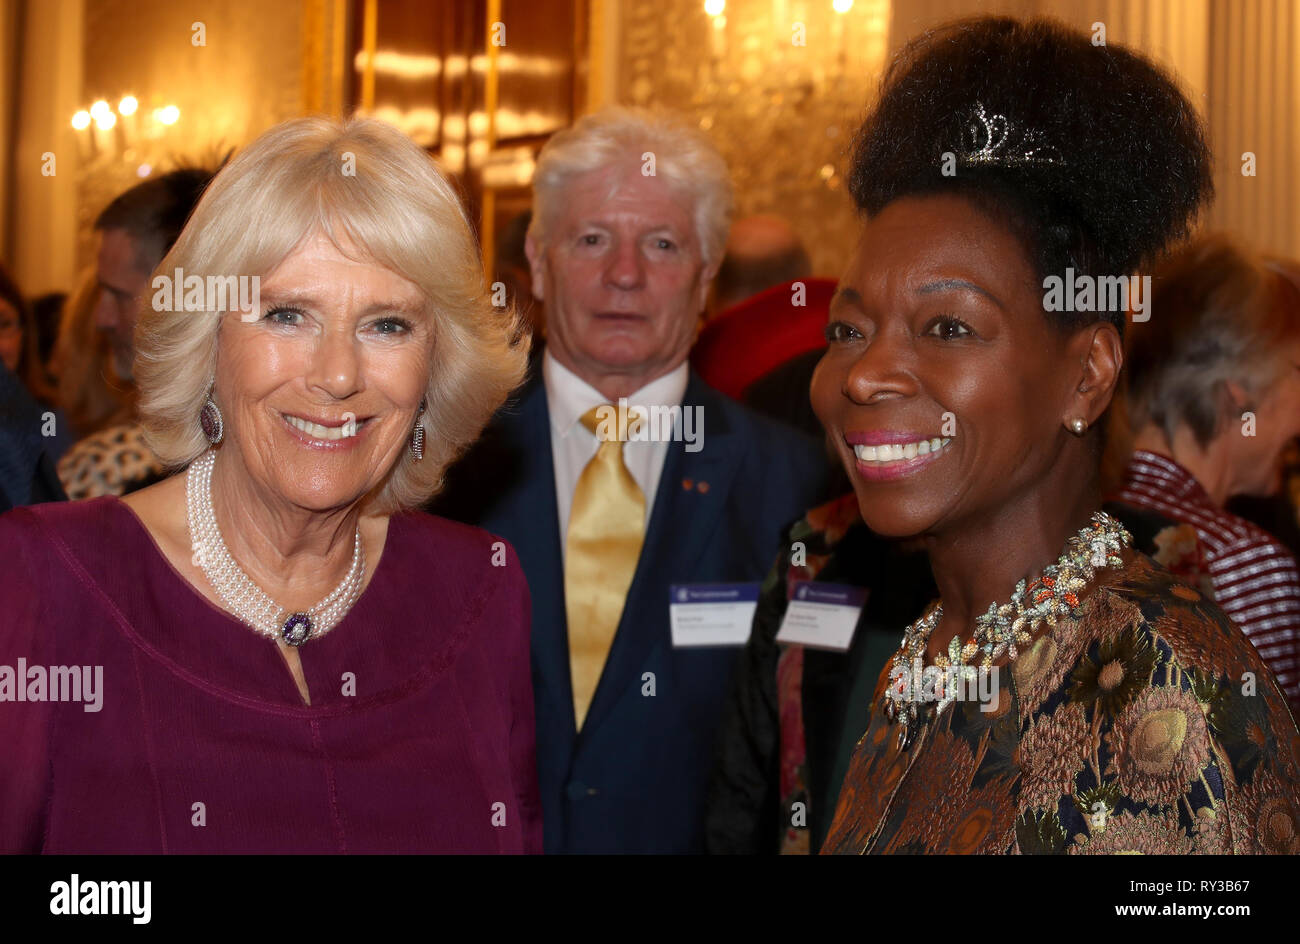 The Duchess of Cornwall and Floella Benjamin at the annual Commonwealth Day reception at Marlborough House, the home of the Commonwealth Secretariat in London. Stock Photo